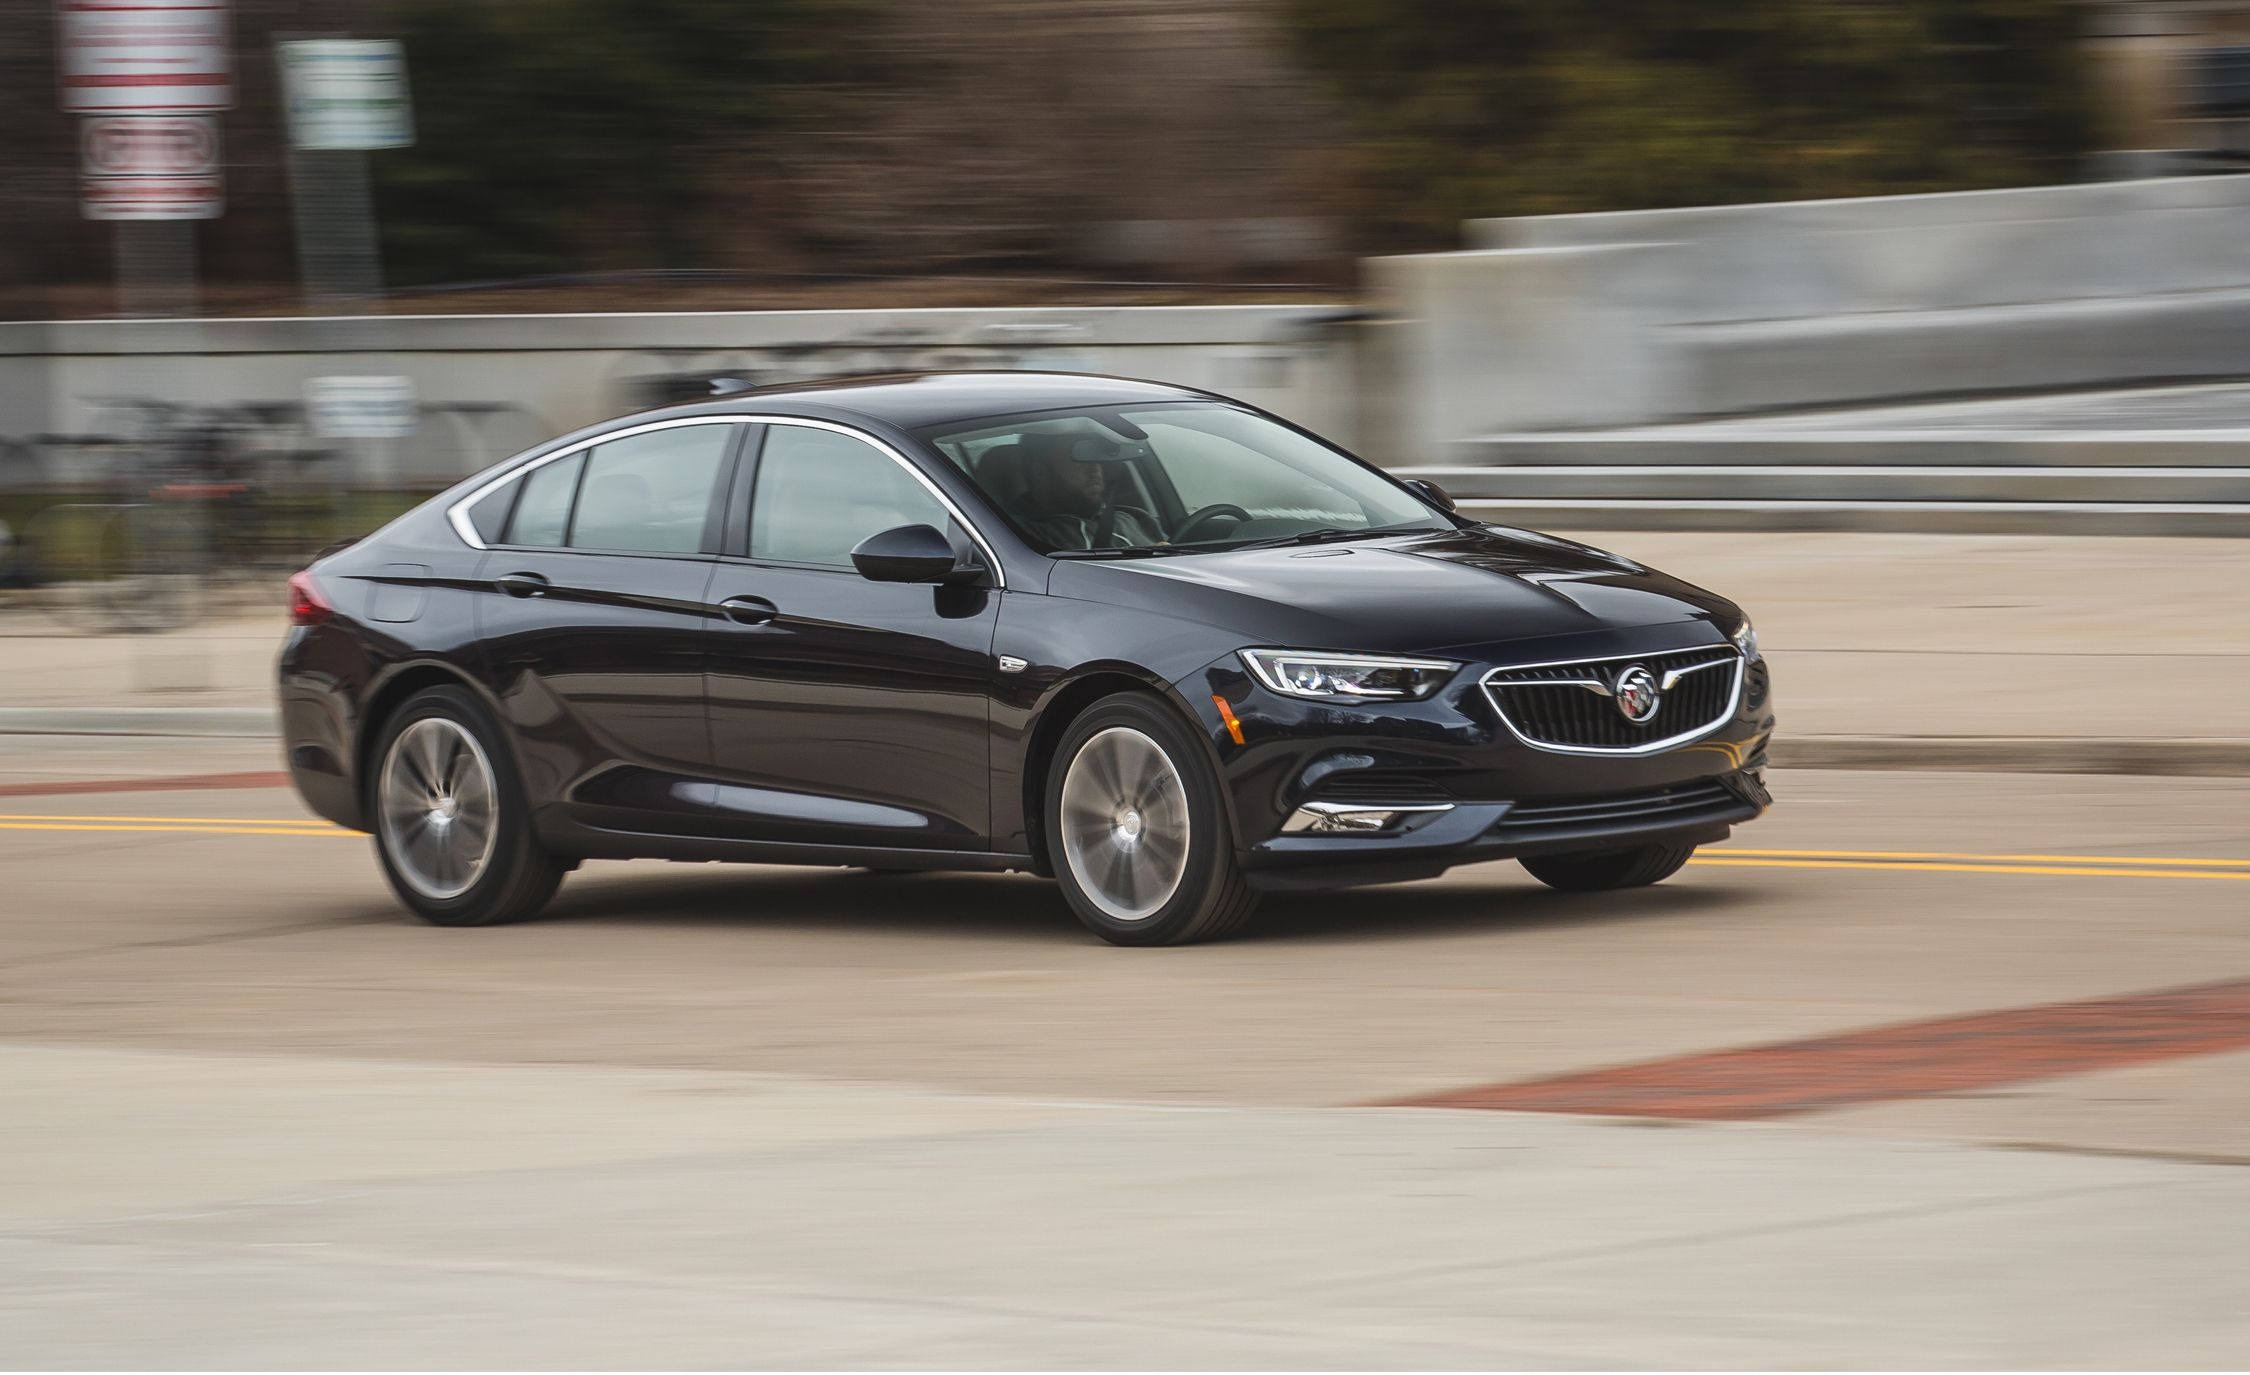 2018 Buick Regal Sportback Fwd Test | Review | Car And Driver 2021 Buick Regal Gs Lease, Engine, Owners Manual